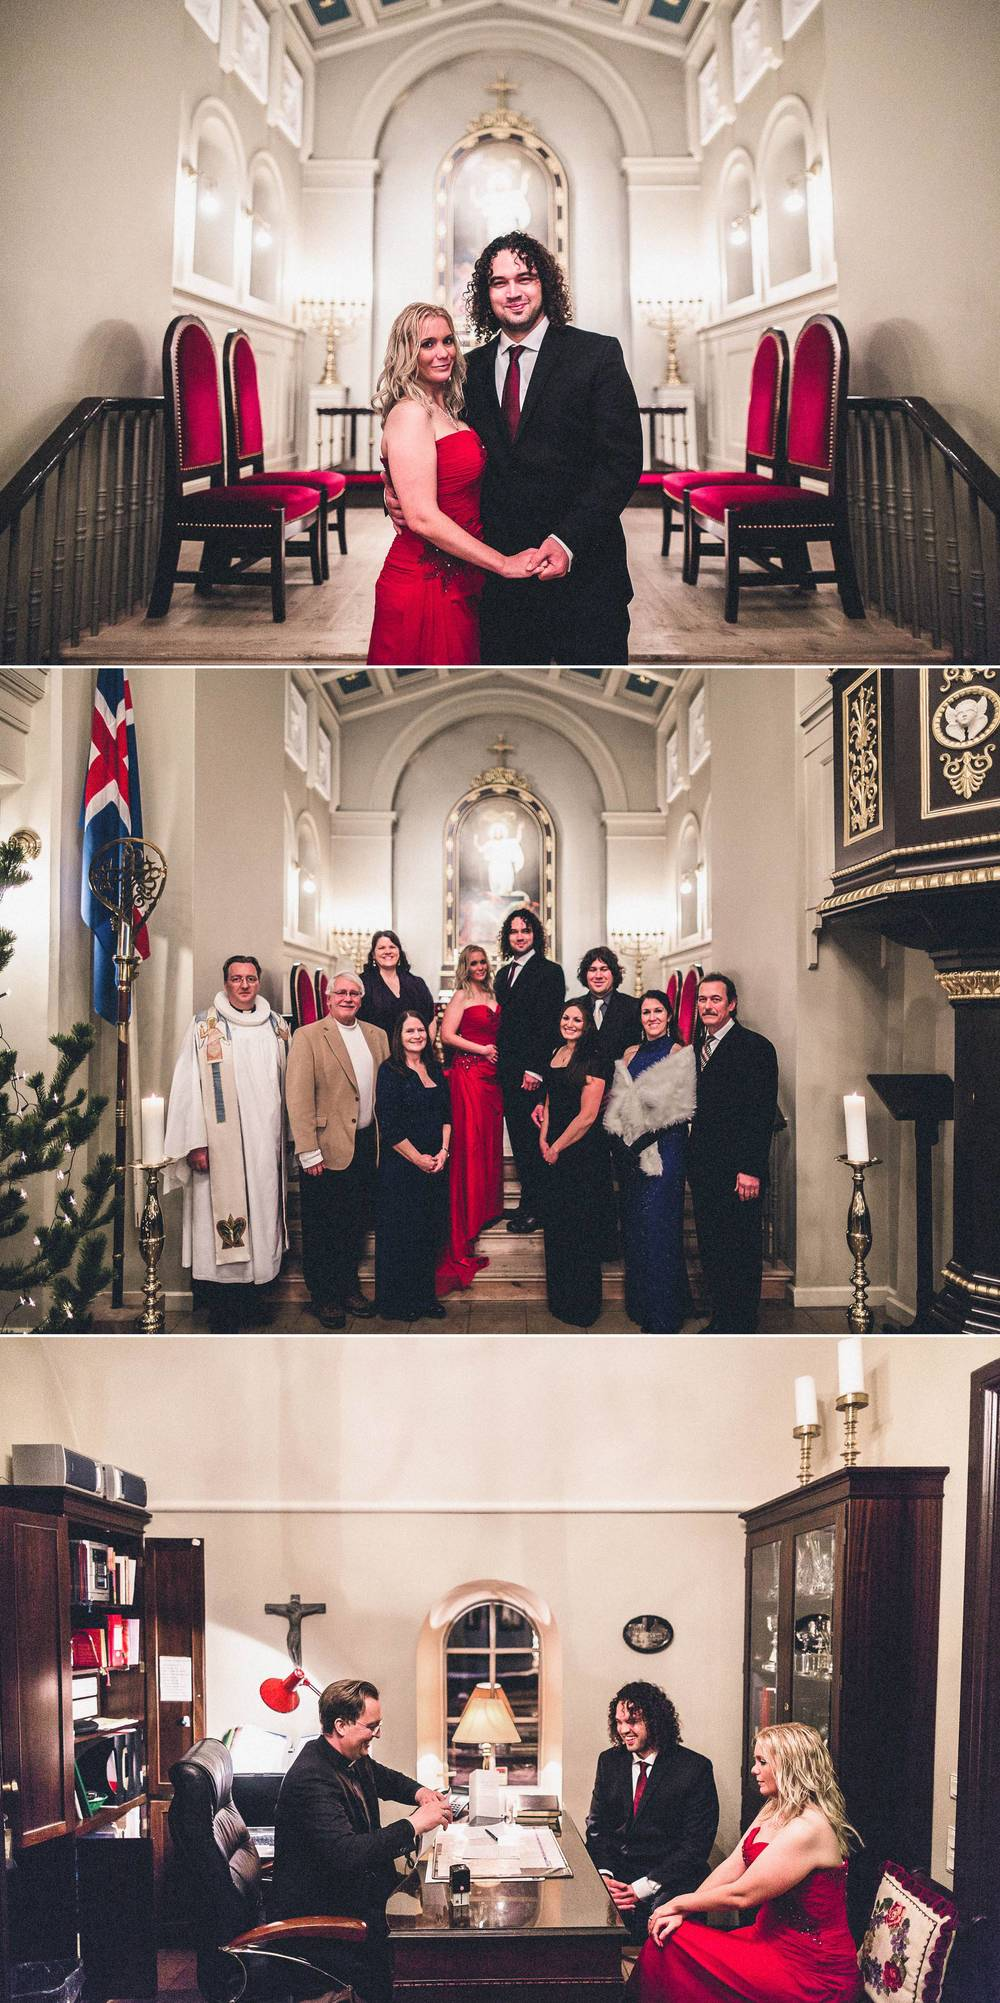 iceland-wedding-photographer 11.jpg